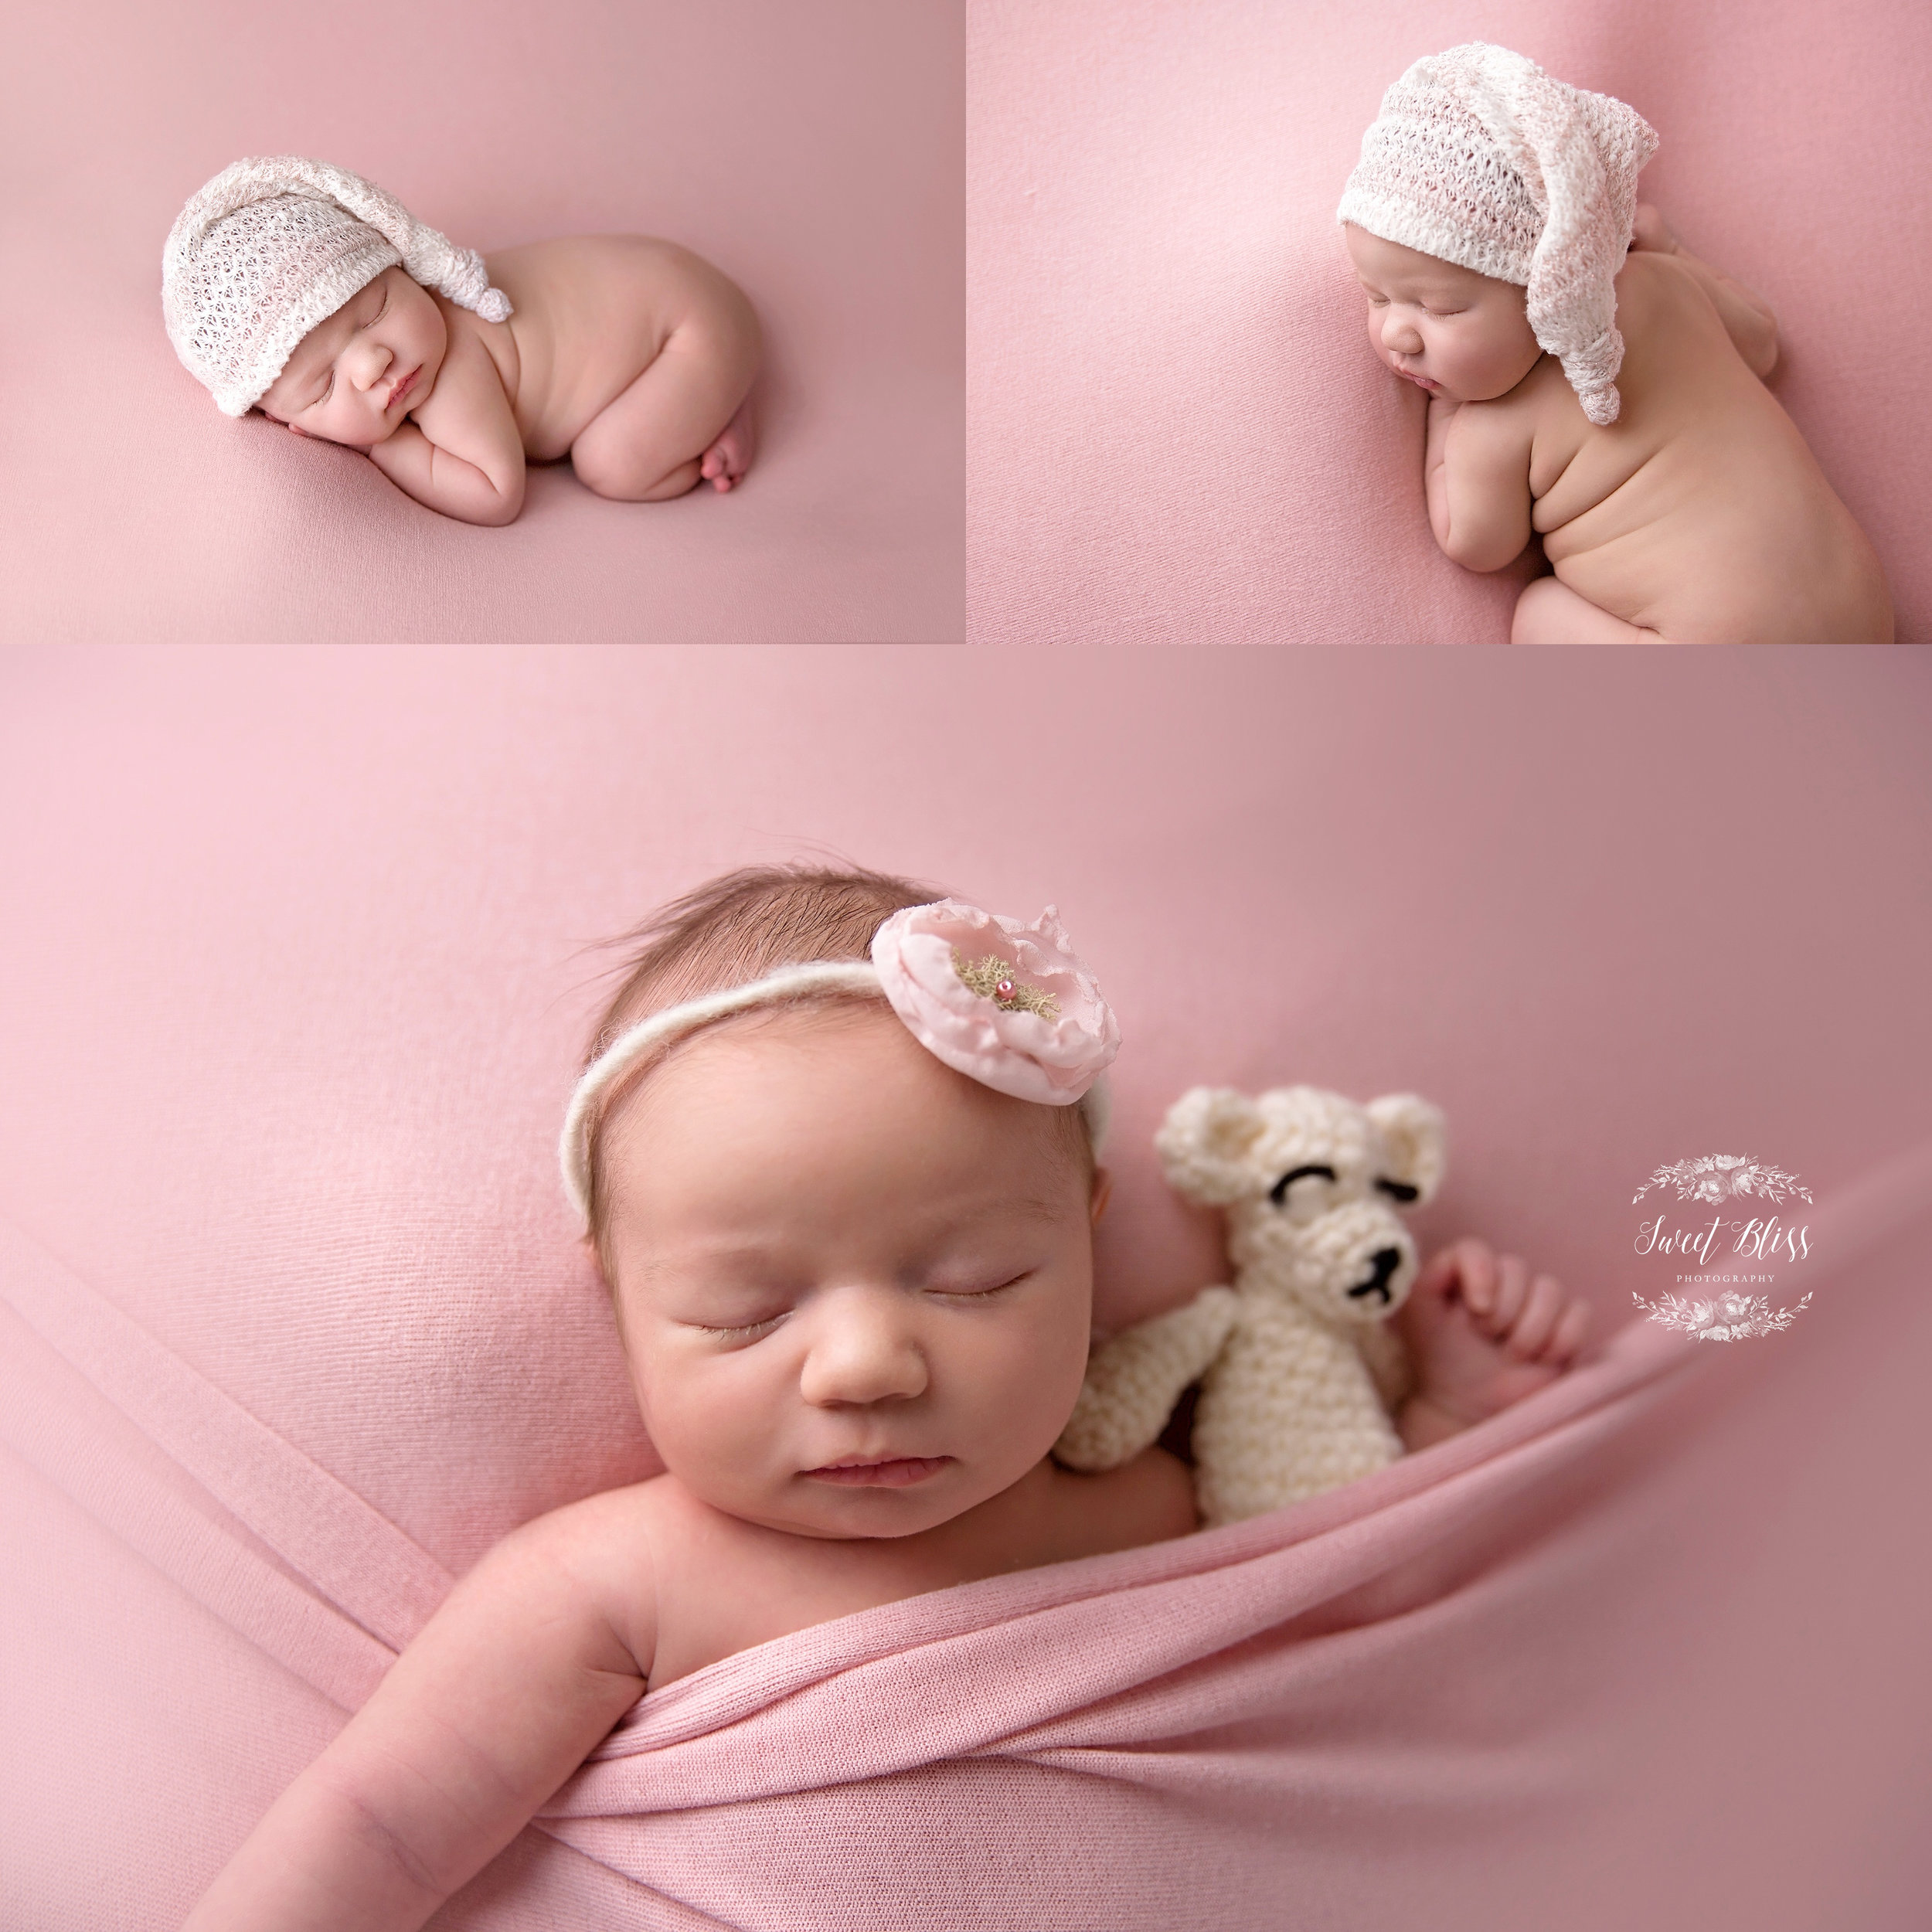 baltimorenewbornphotographer_harfordcountynewborn_sweetblissphotography_pink1.jpg